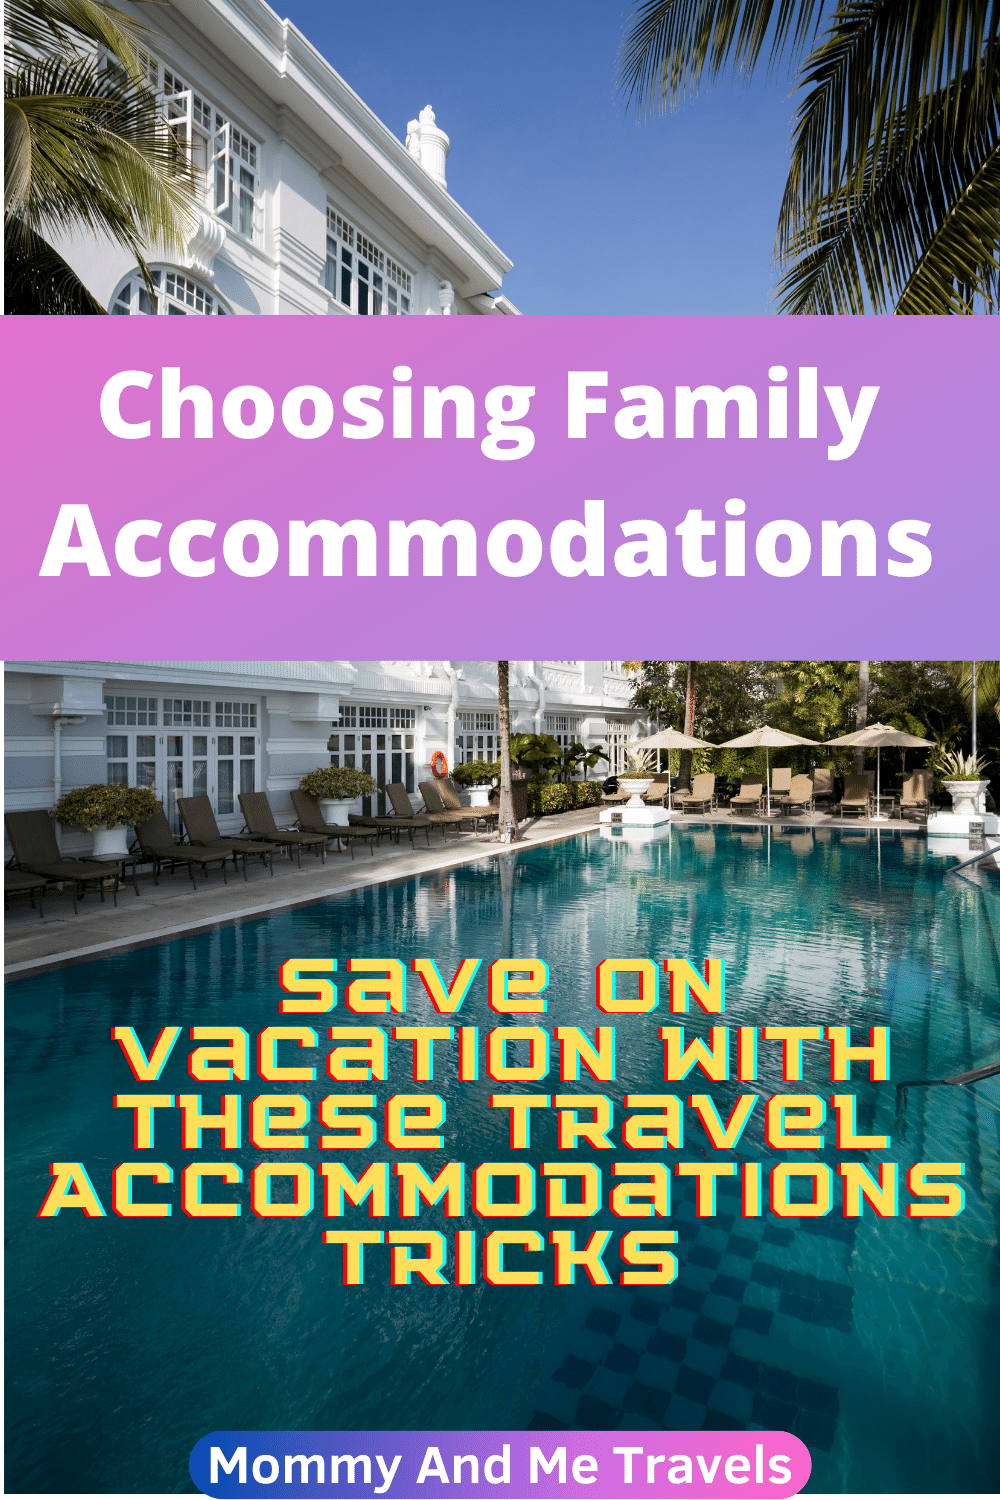 Tips To Choosing Family Accommodations - Save On Vacations With These Travel Accommodations Tricks